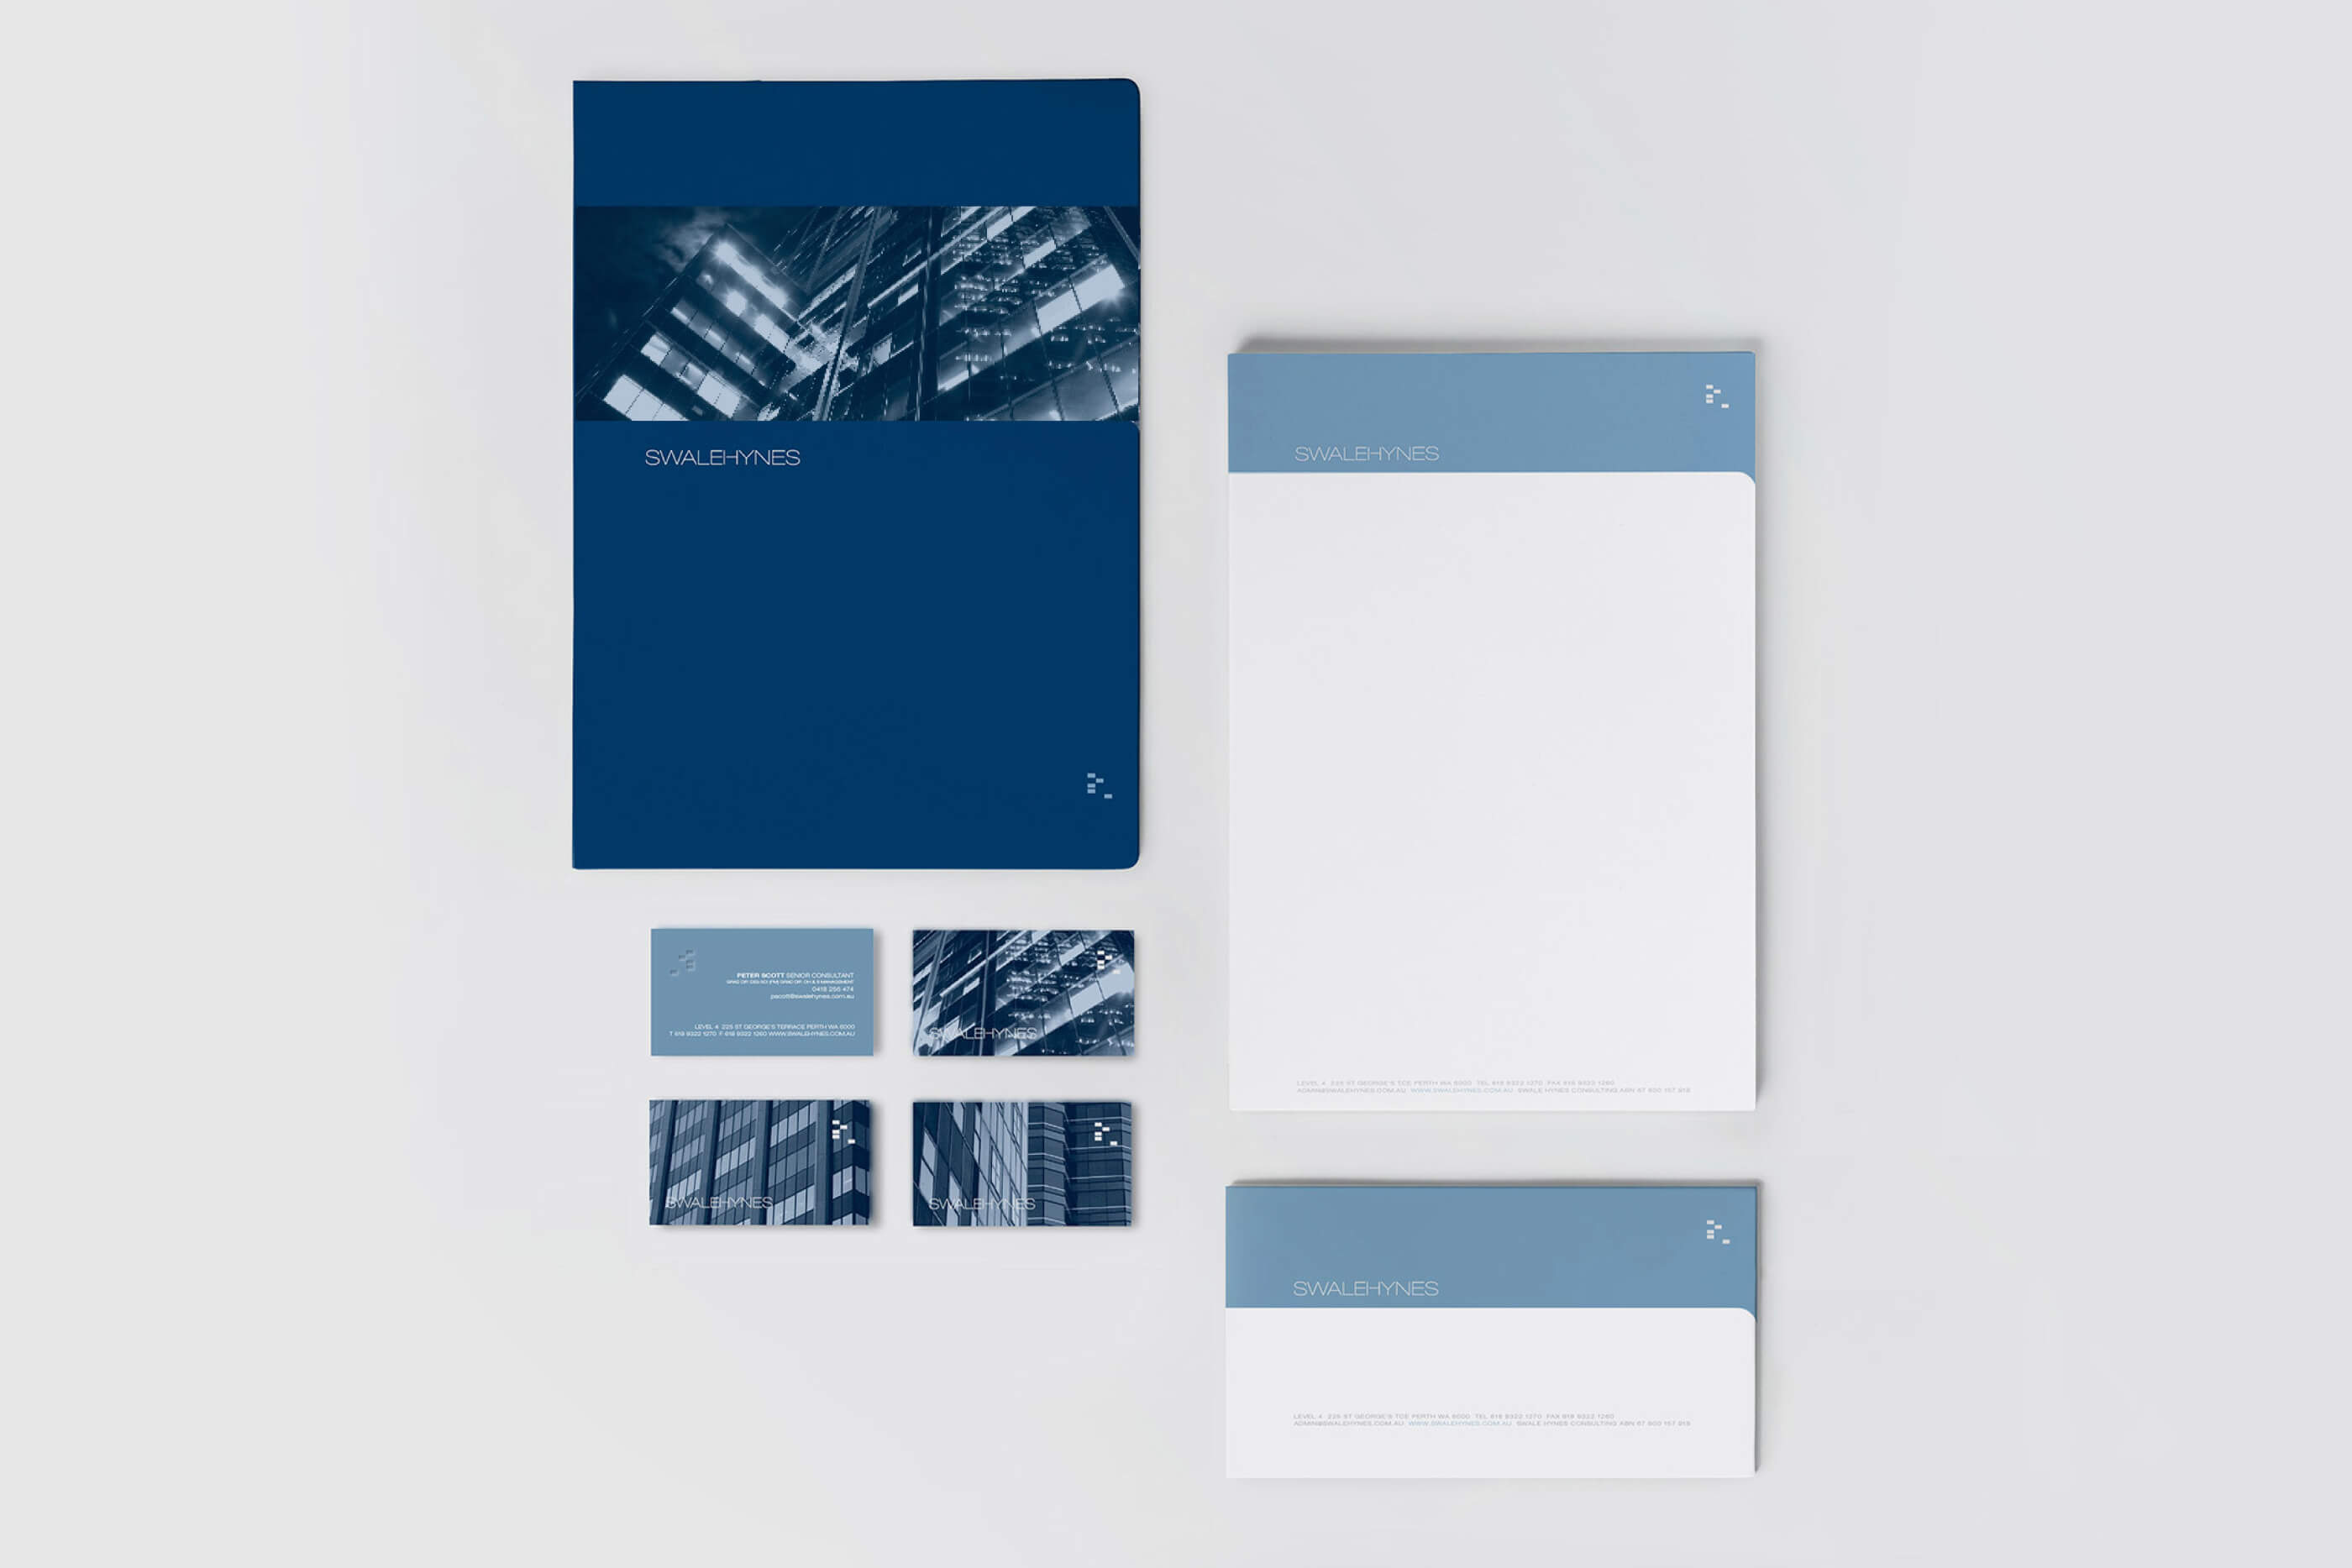 swale_hynes_stationery